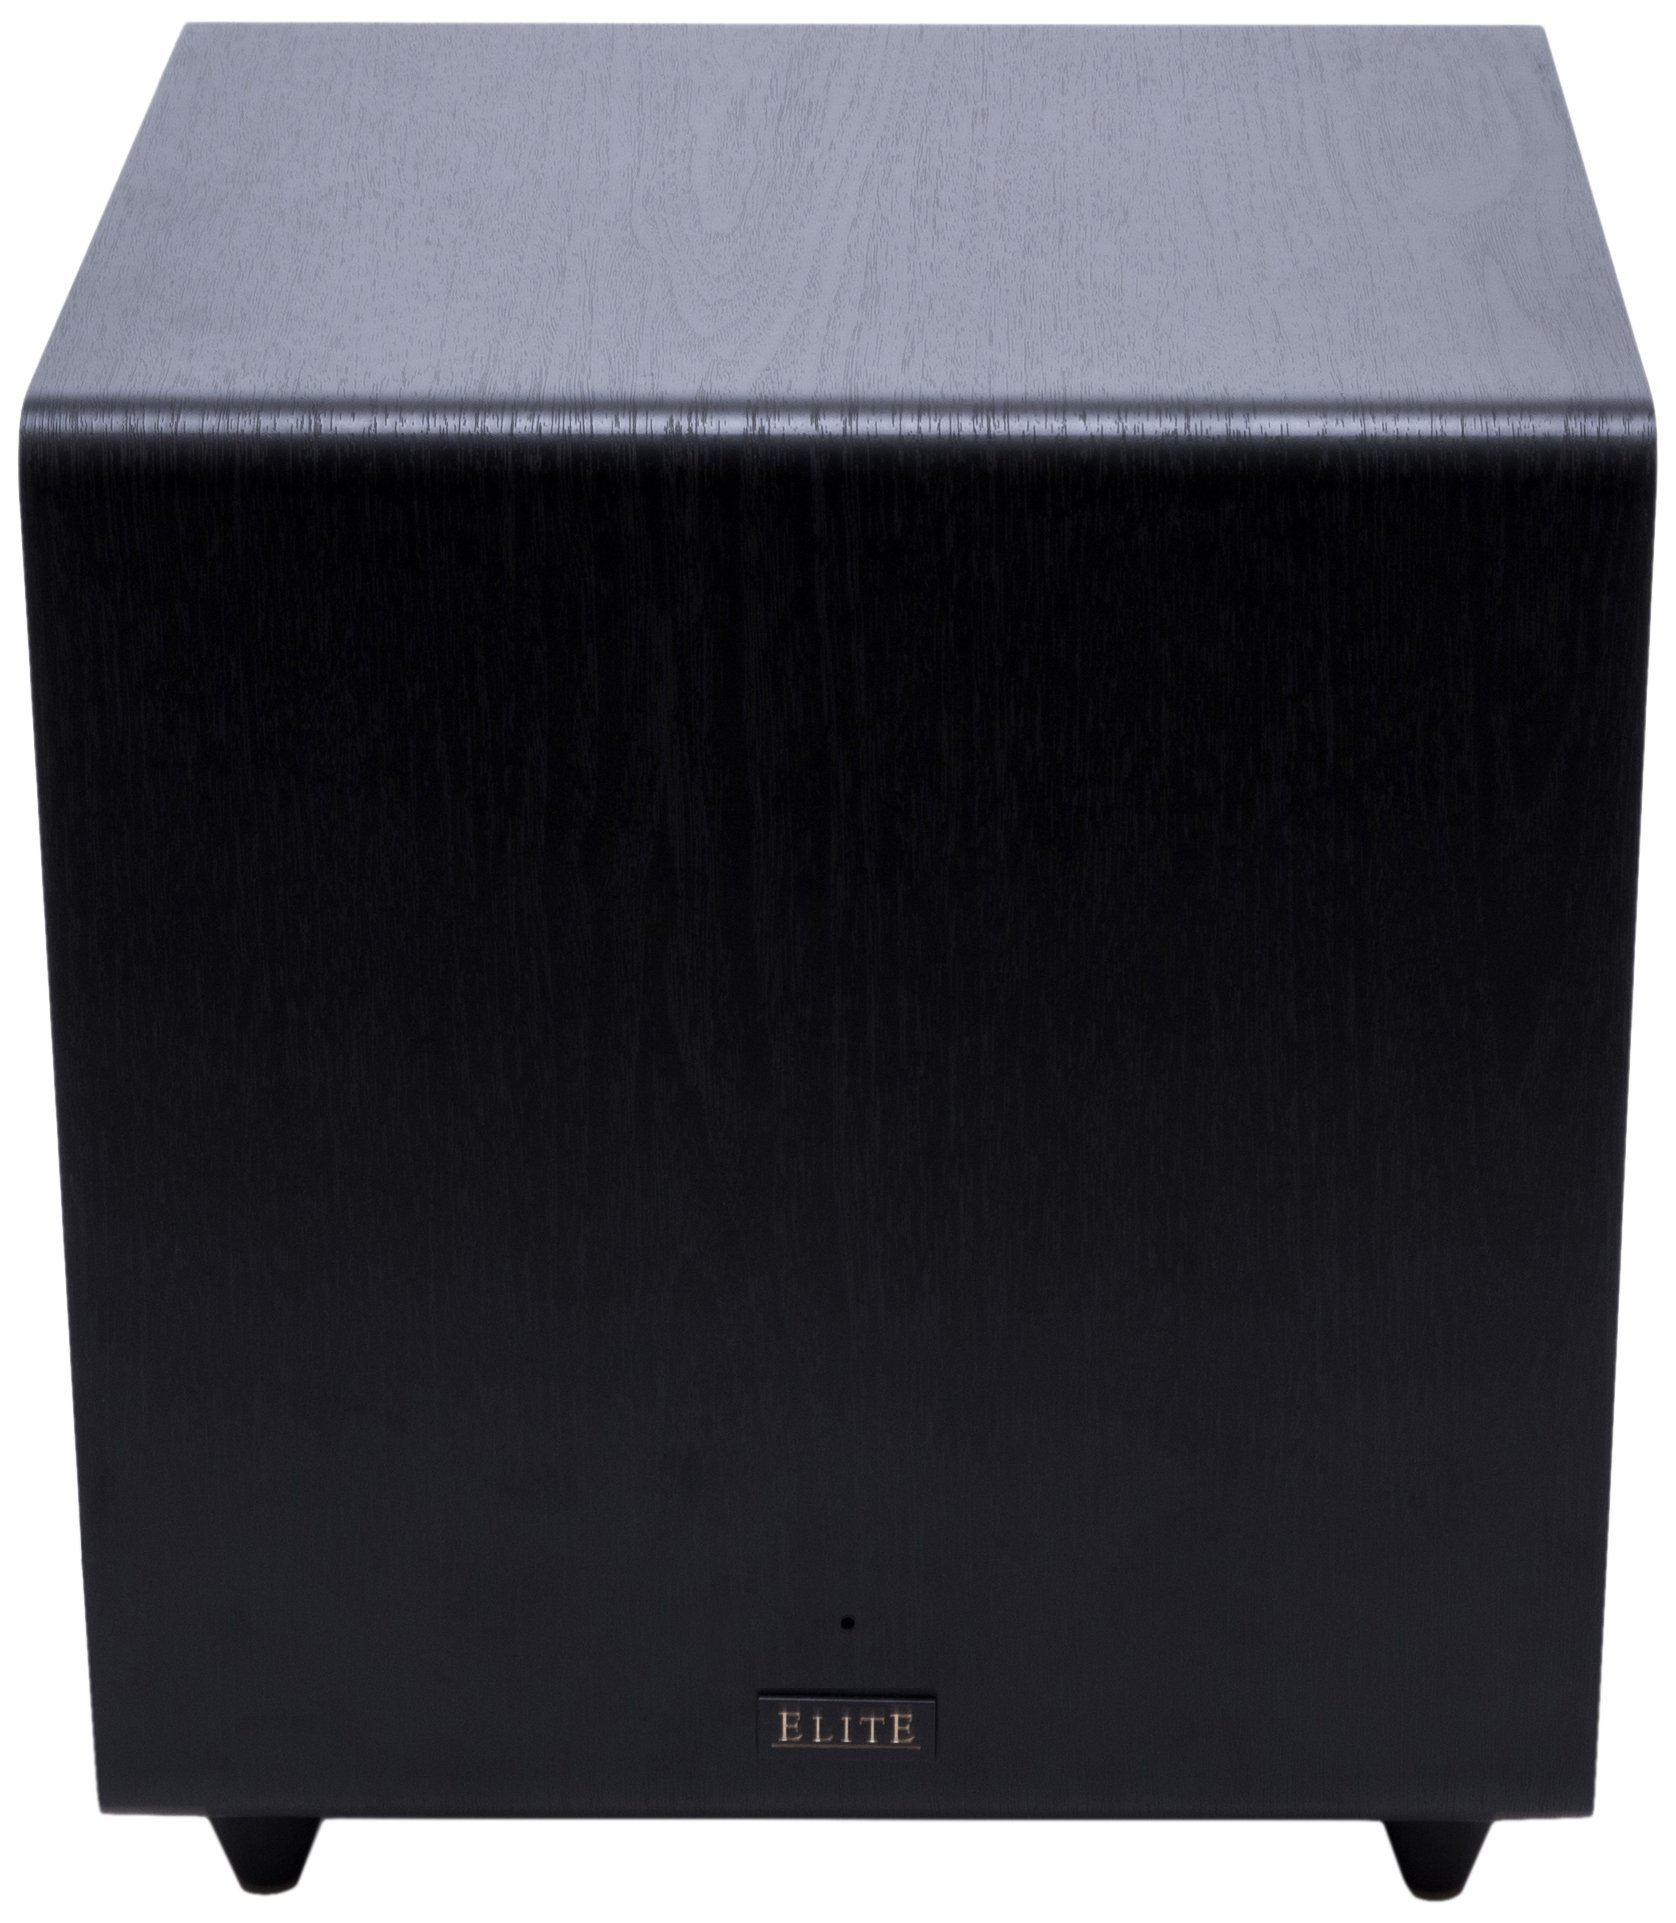 Pioneer Elite SW-E10 Andrew Jones 300-Watt Powered Subwoofer by Pioneer